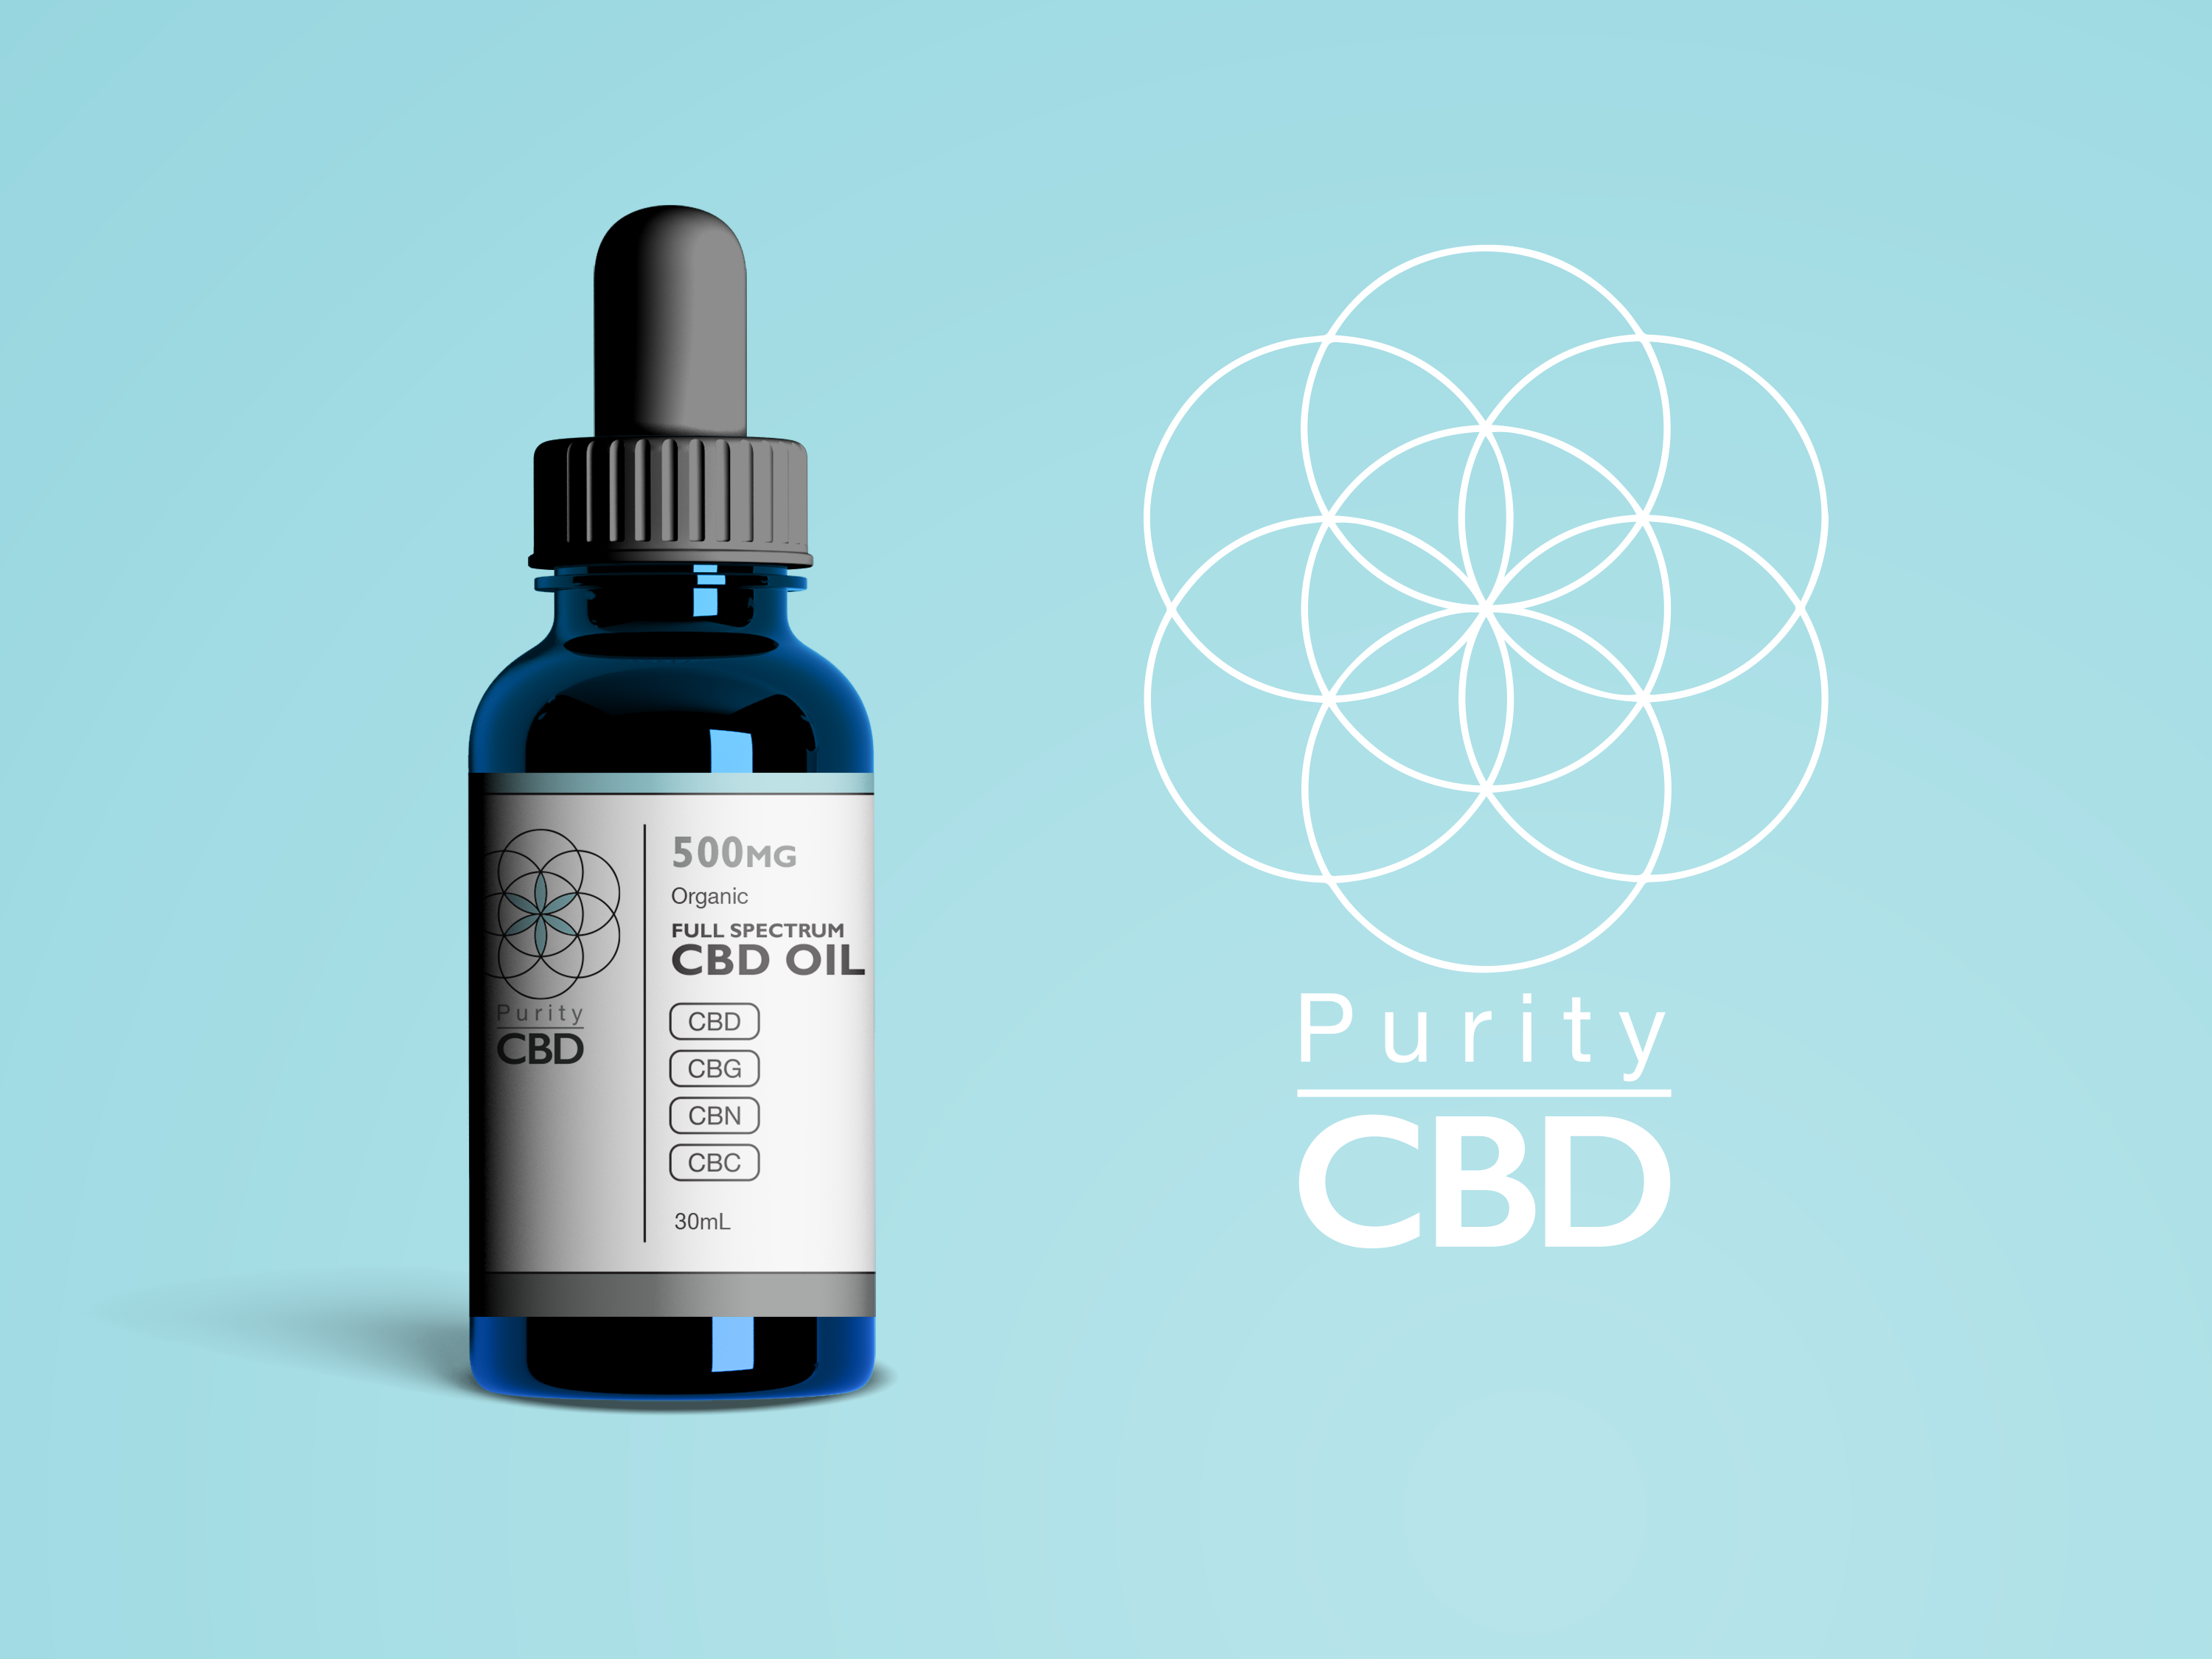 Purity CBD™ Full-Spectrum CBD Oil (500mg) Flavor Options